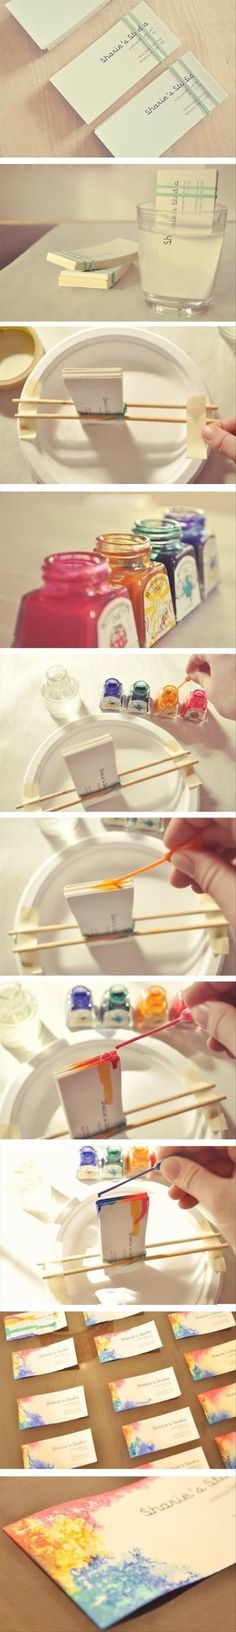 Simple Ideas That Are Borderline Crafty – 52 Pics